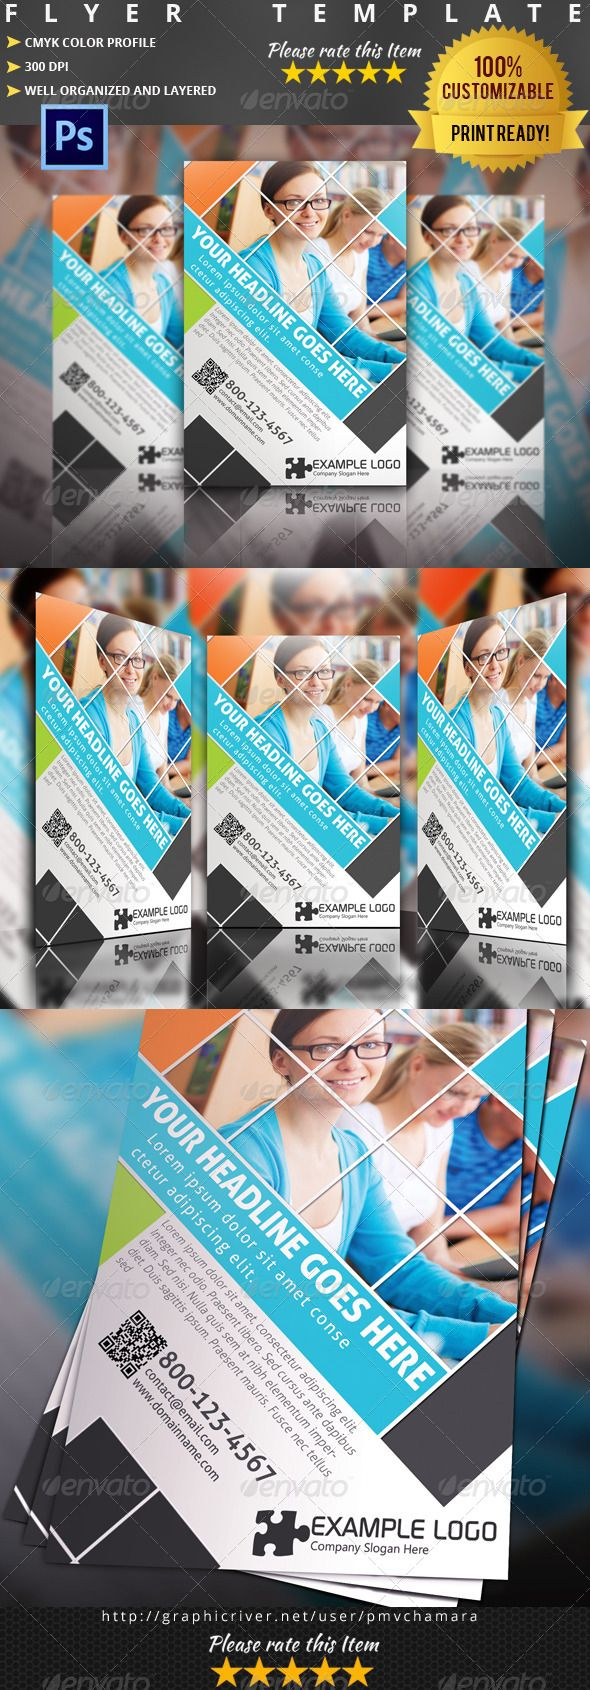 education flyer fully editable promotional flyer template class edu education flyer handbill pampas poster psd school student template tuition